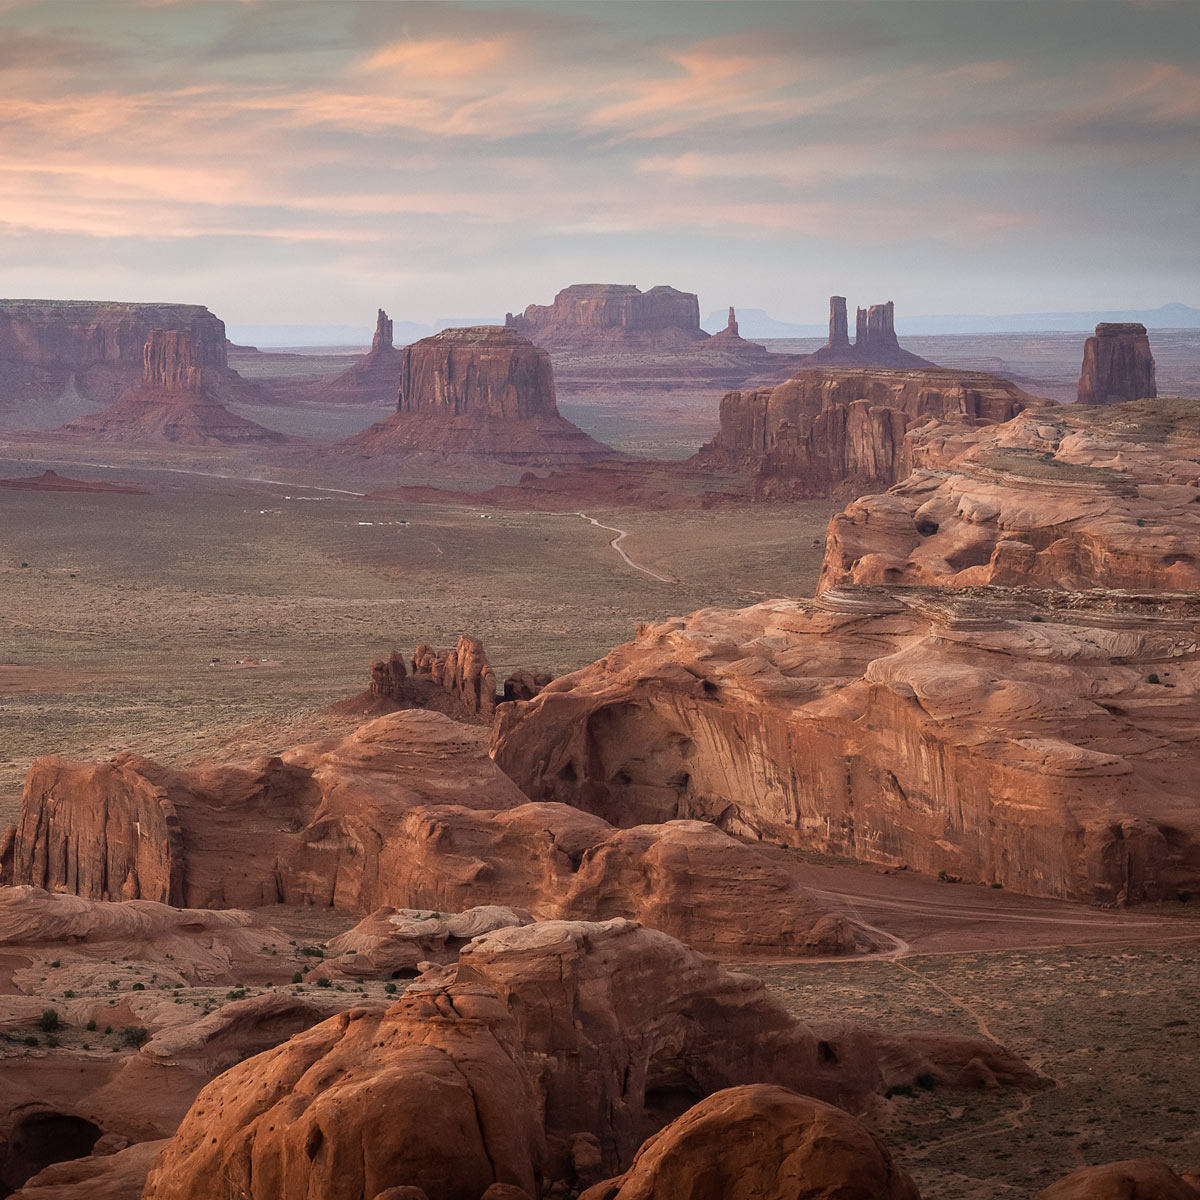 Monument Valley - Deserts of the Southwest